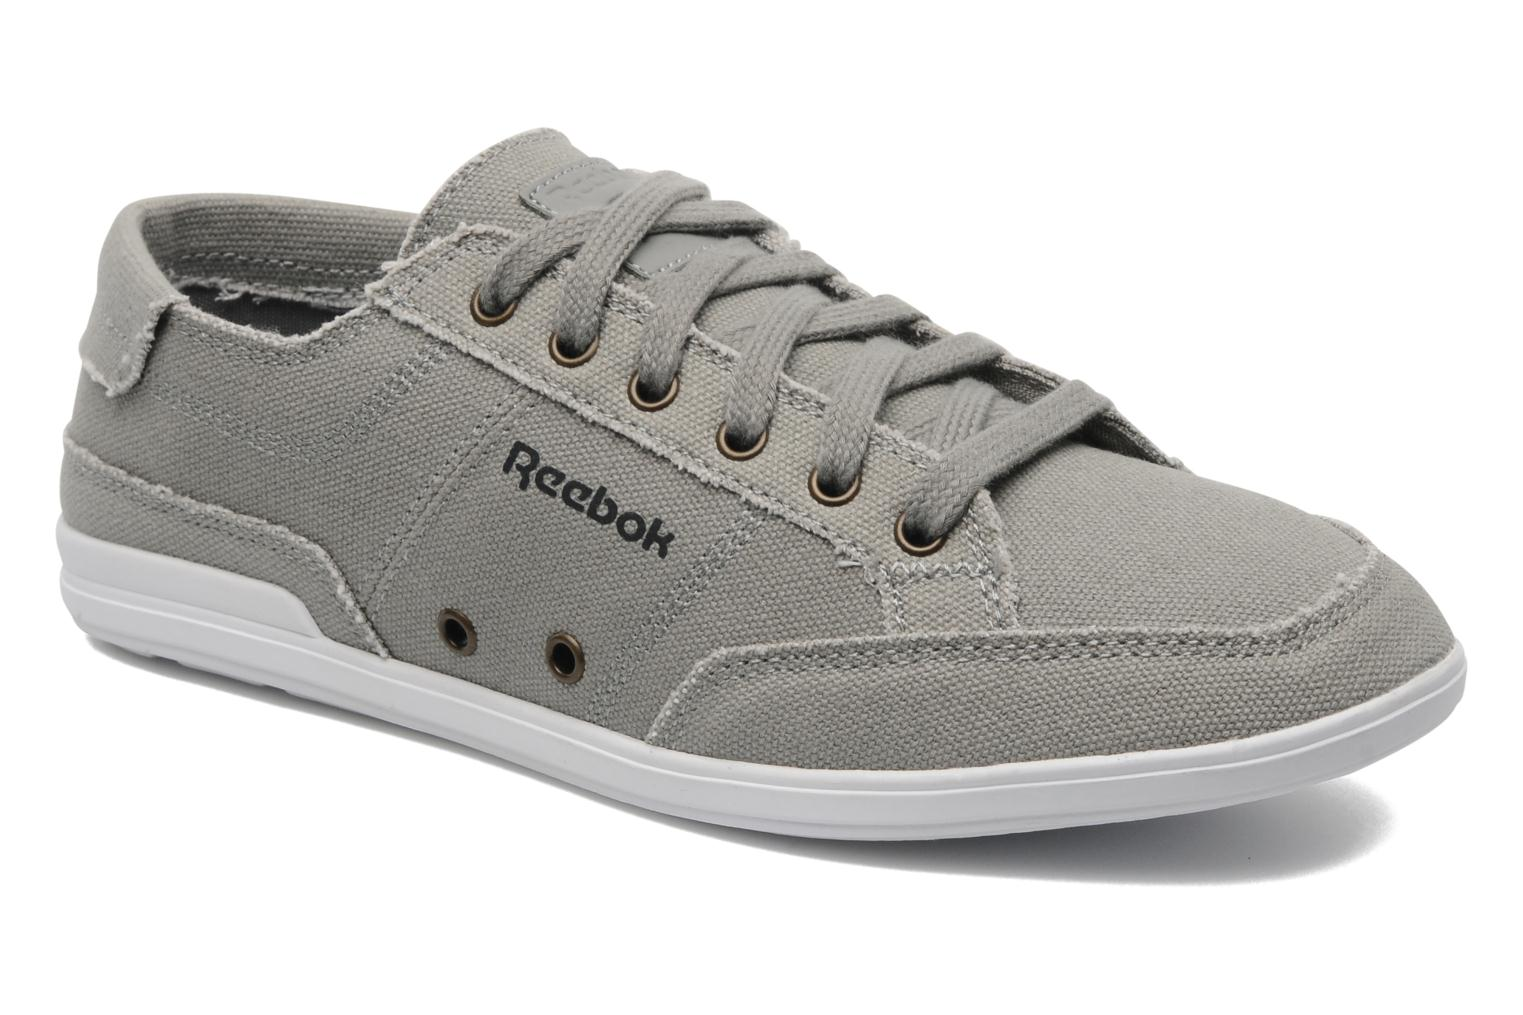 Reebok Royal Deck Tin Gry/Gravel/Lemon Pepper/Copper/Rbk Royal